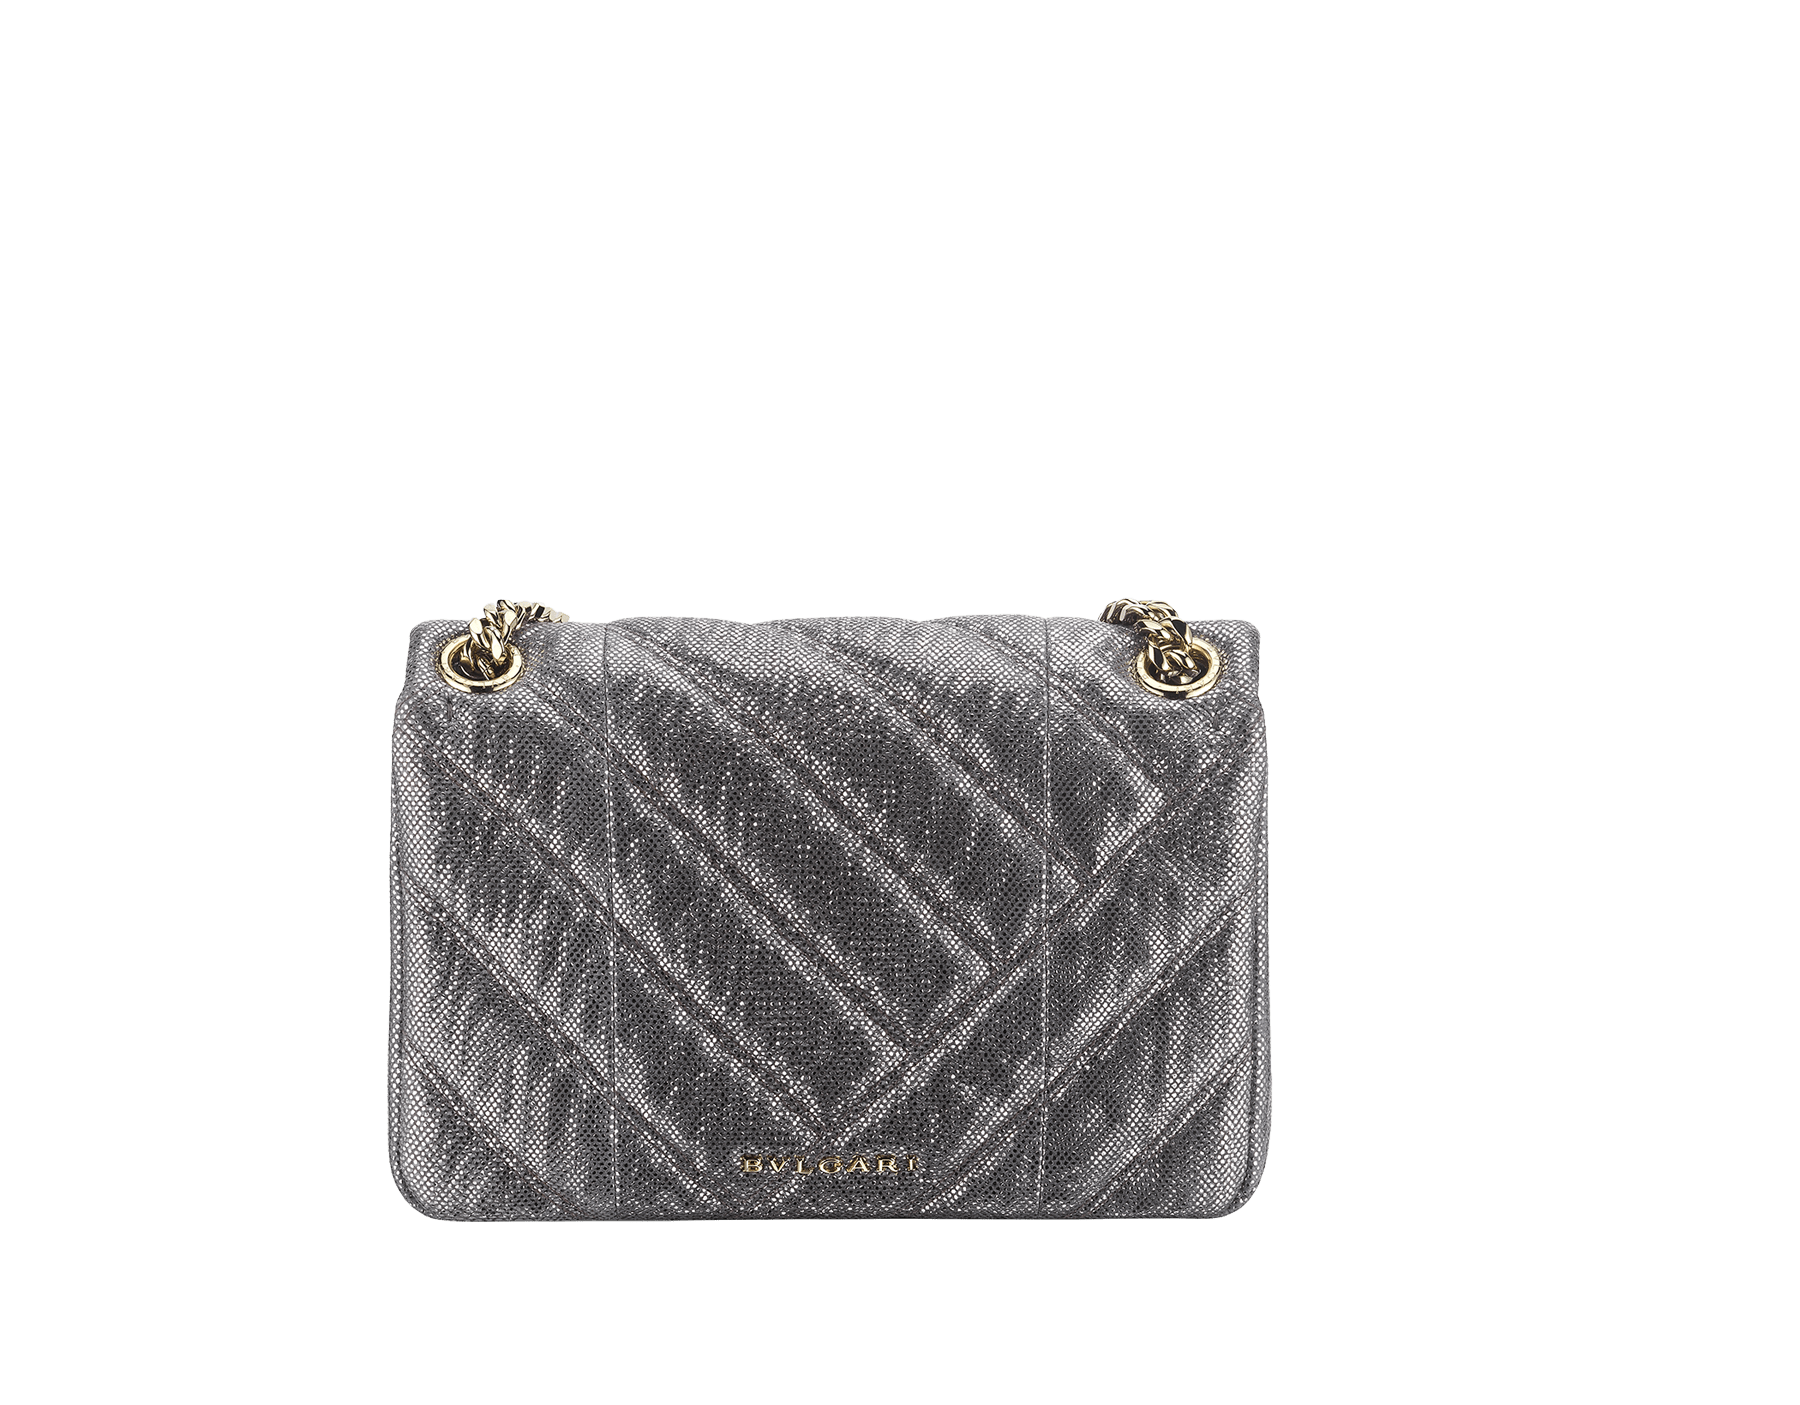 Serpenti Cabochon shoulder bag in soft matelassé charcoal diamond metallic karung skin with graphic motif. Snakehead closure in light gold plated brass decorated with matte black and glitter charcoal diamond enamel, and black onyx eyes. 290237 image 3